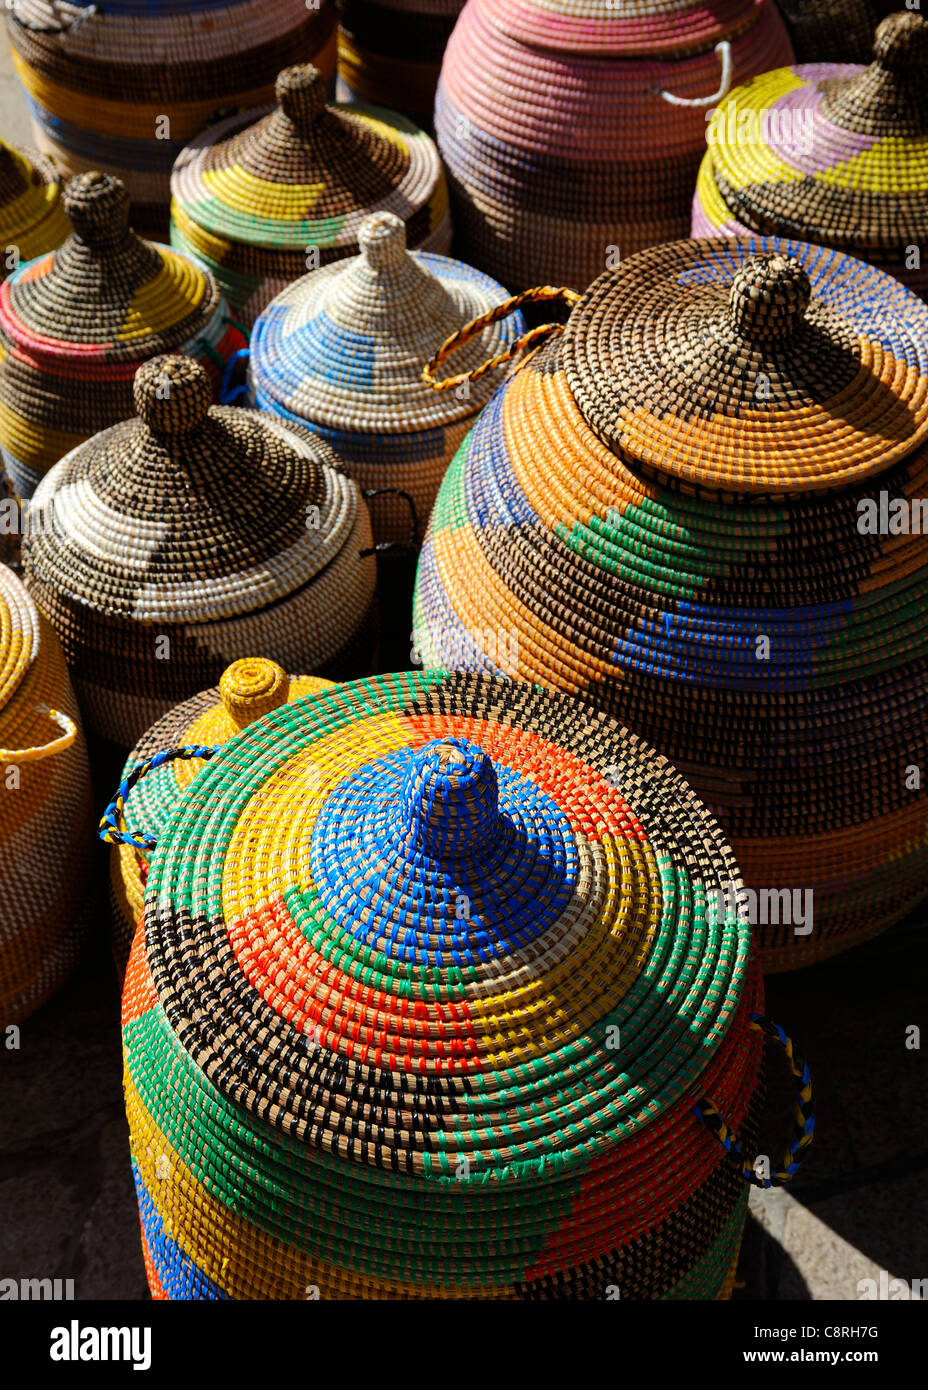 COLOURFUL WOVEN BASKETS IN A STREET MARKET MALLORCA MAJORCA SPAIN ESPANA -  Stock Image 6d73bf728b2f